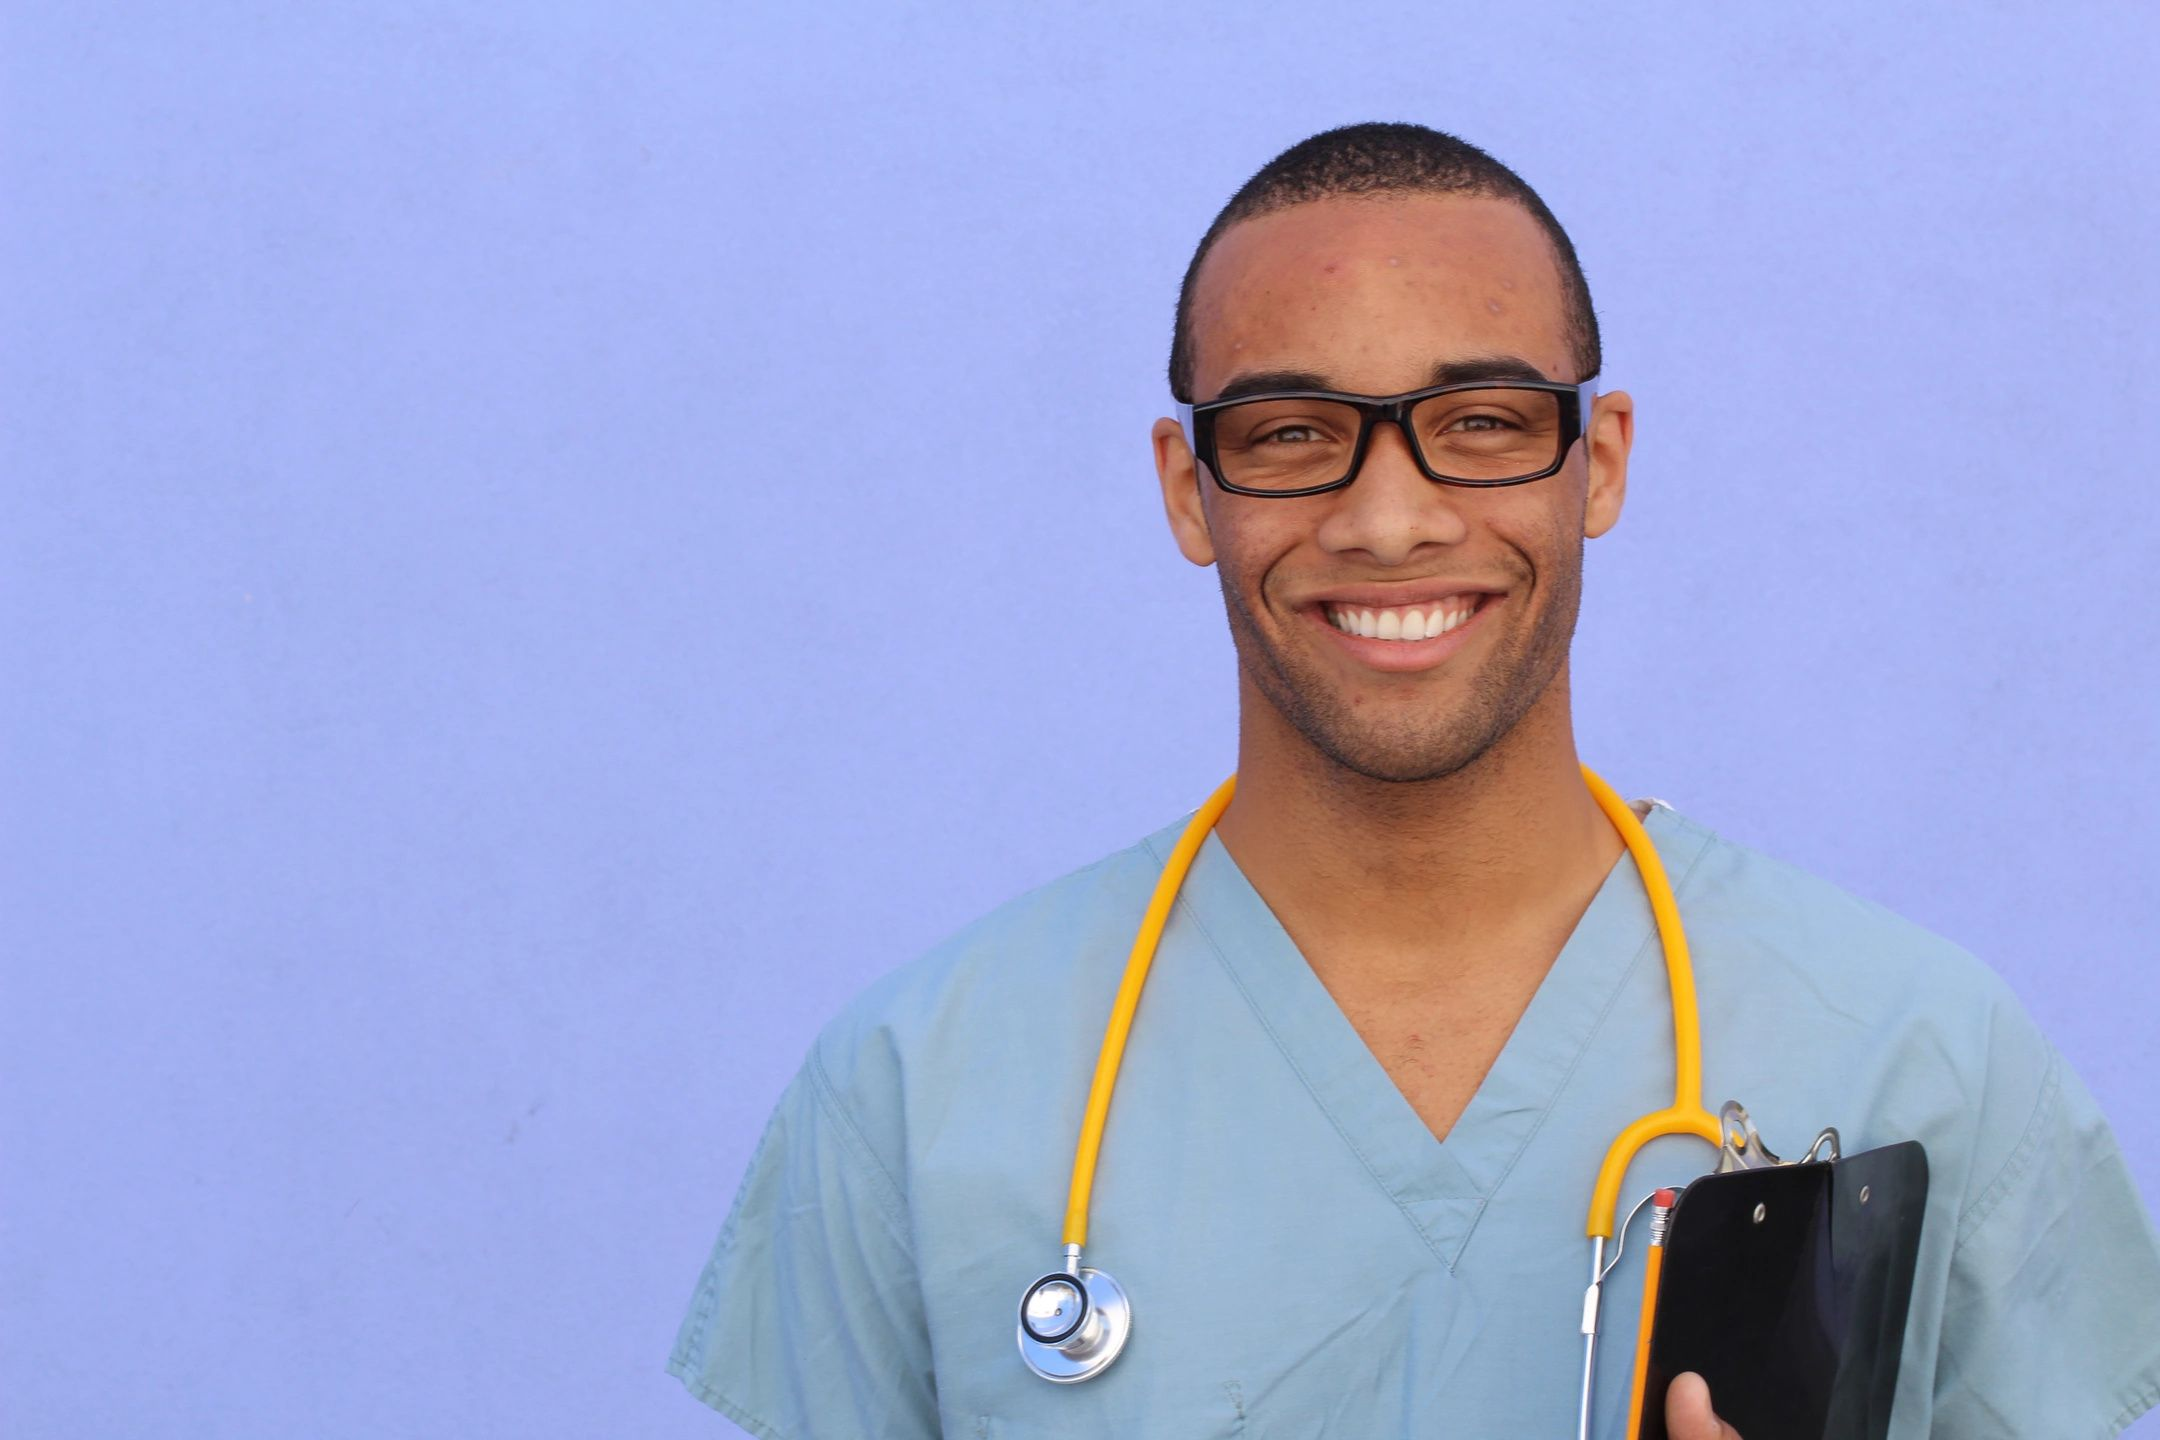 Healthcare worker wearing blue scrubs, glasses and a yellow stethoscope holding a clipboard and smiling at the camera